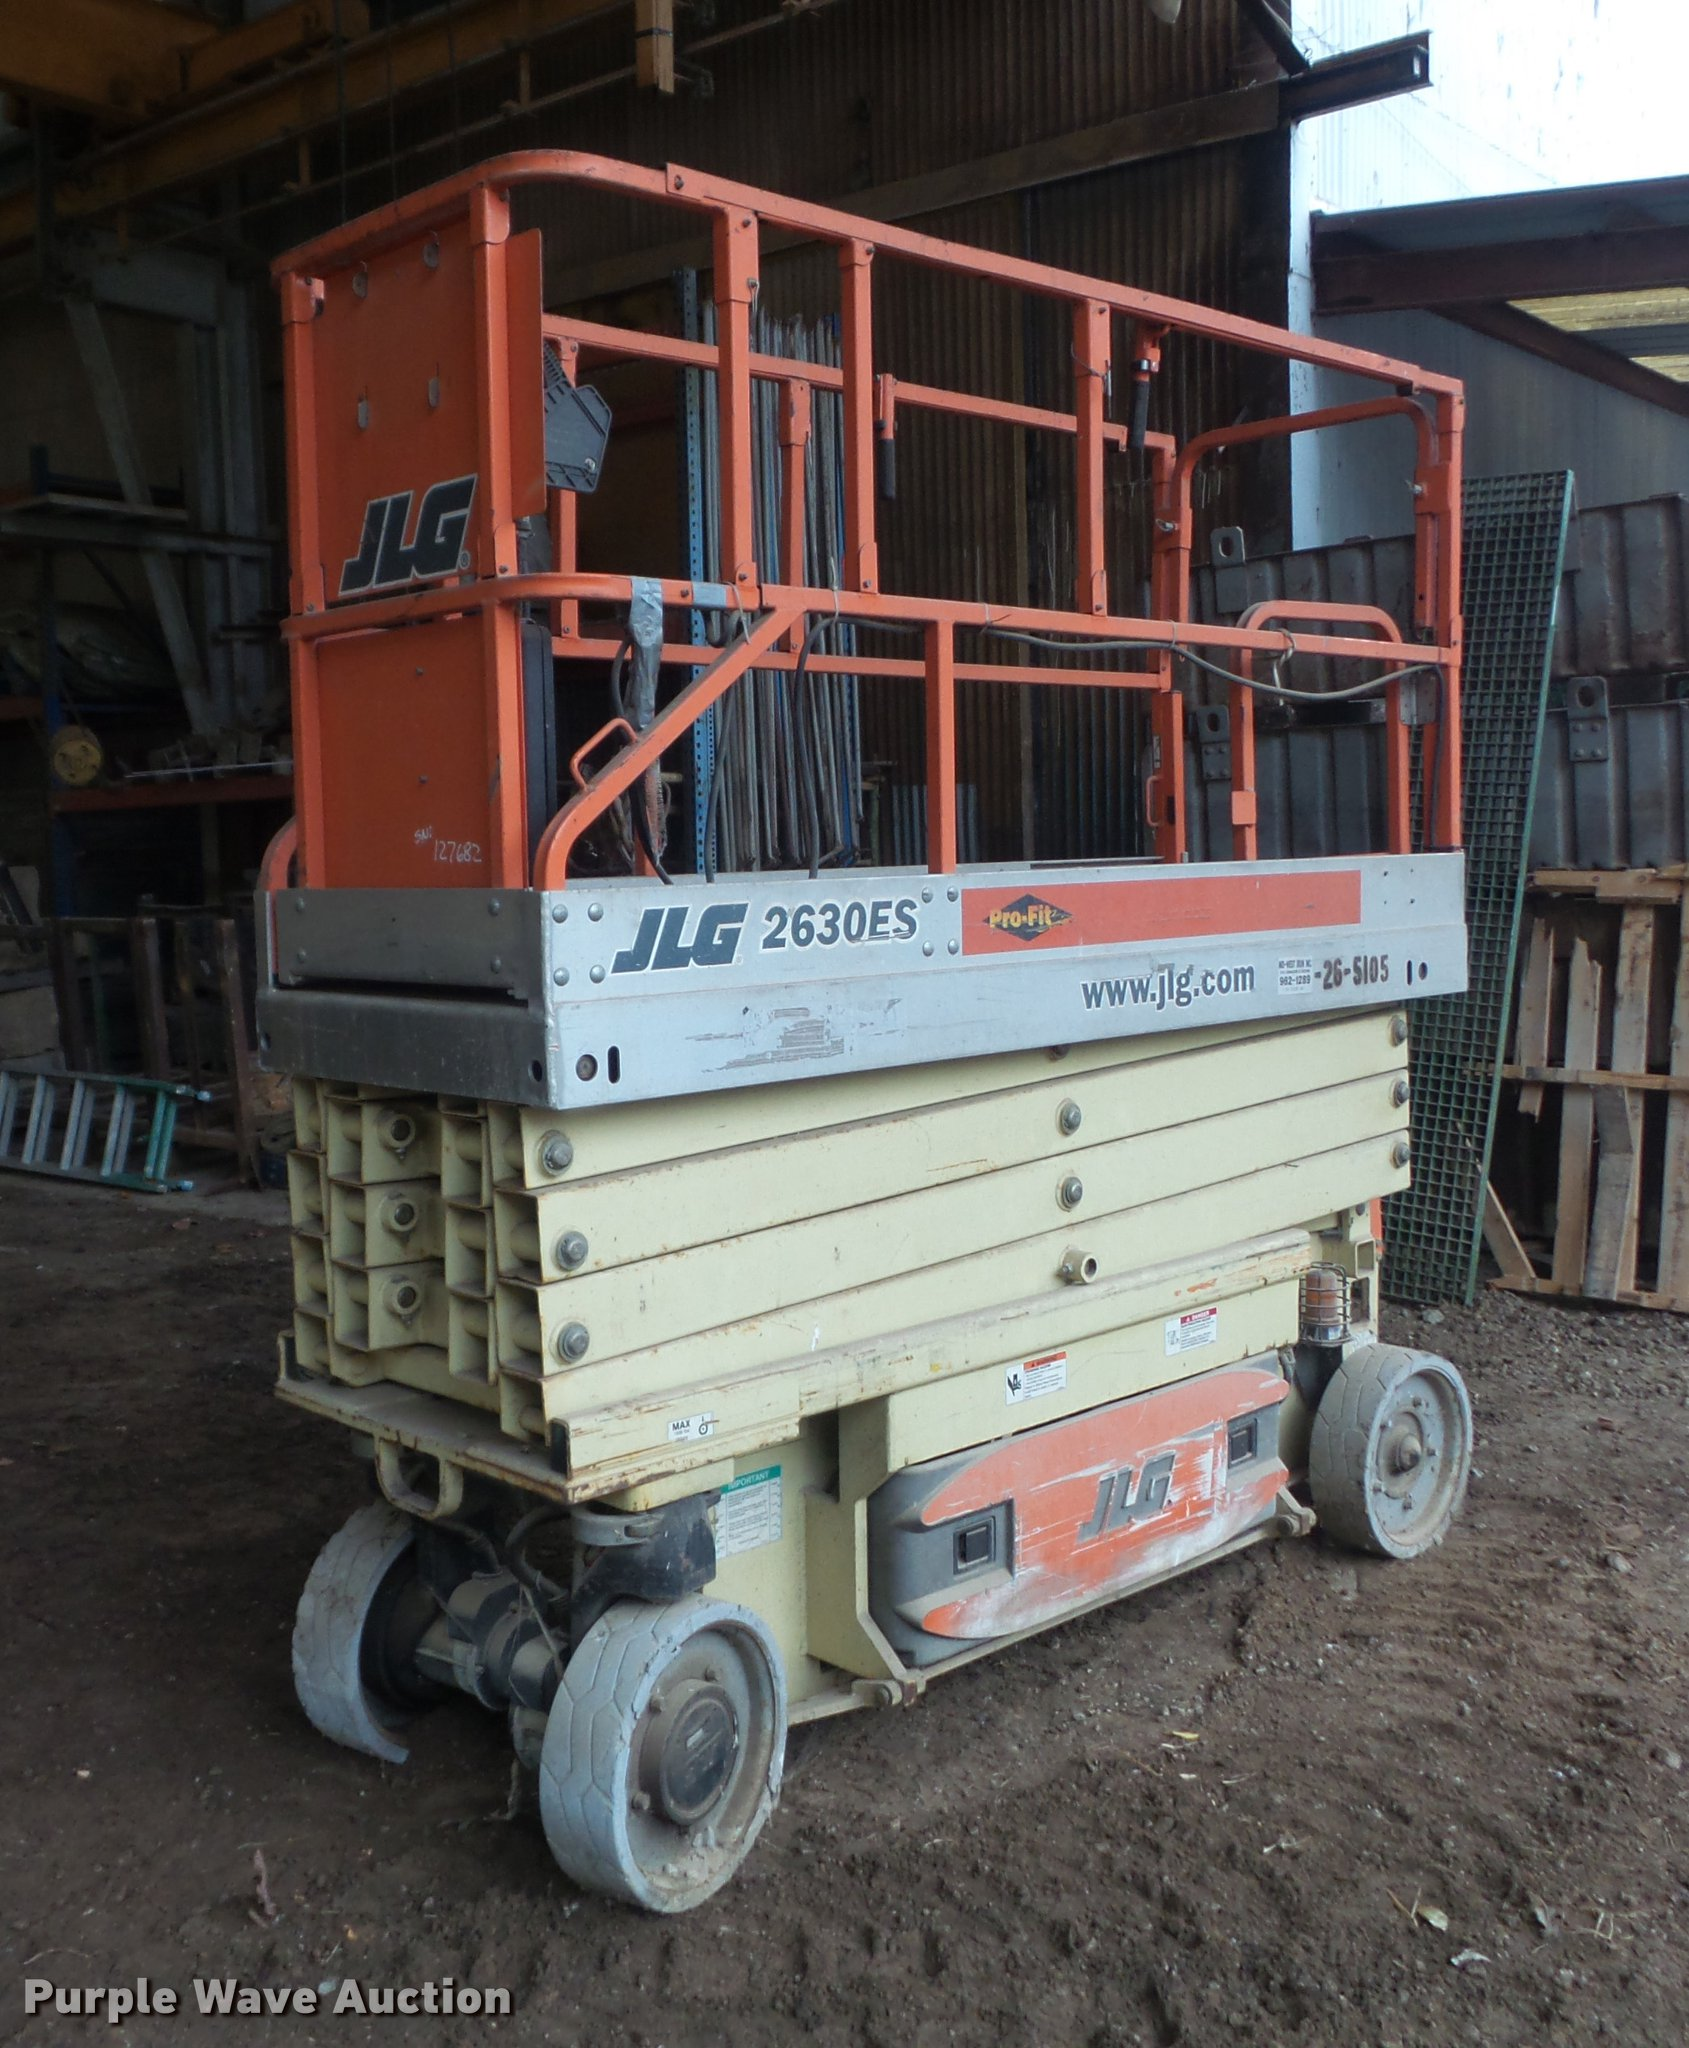 hight resolution of db6384 image for item db6384 2005 jlg 2630es scissor lift